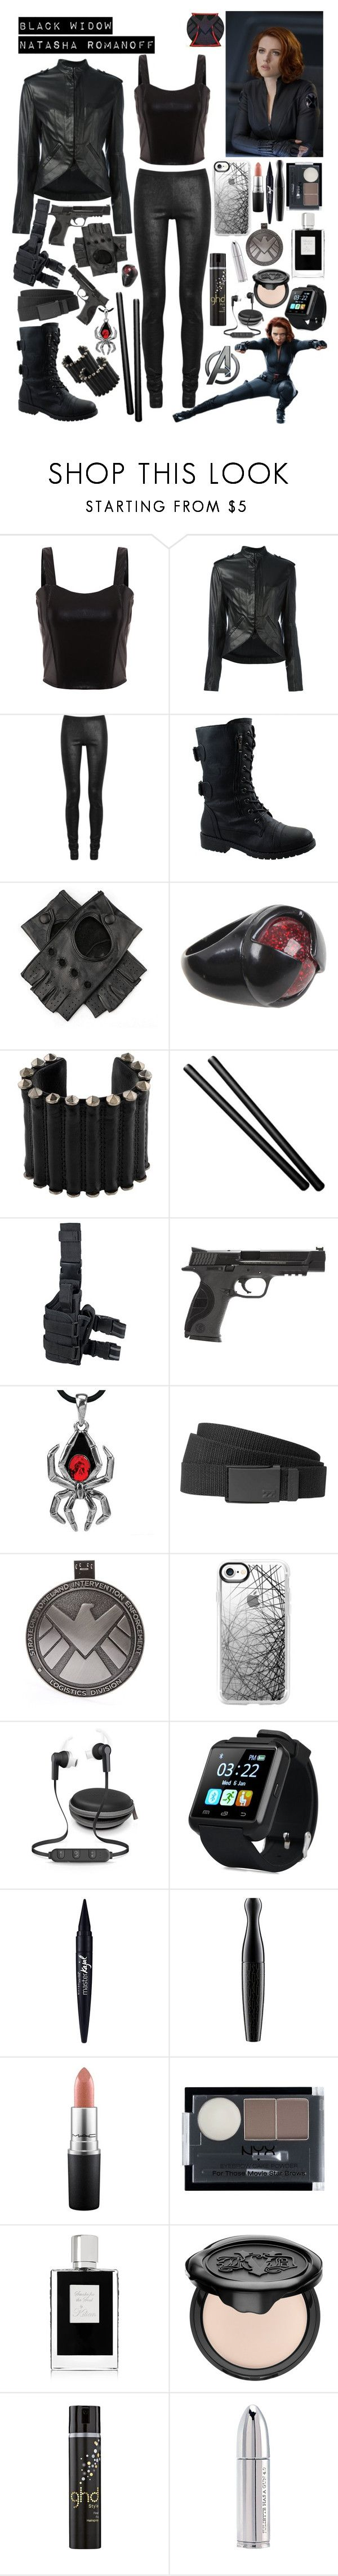 """Black Widow / Natasha Romanoff"" by lexisamskywalker on Polyvore featuring Haider Ackermann, Rick Owens, Forever Link, Black, Marvel, Ann Demeulemeester, Smith & Wesson, Billabong, Casetify and iWorld"